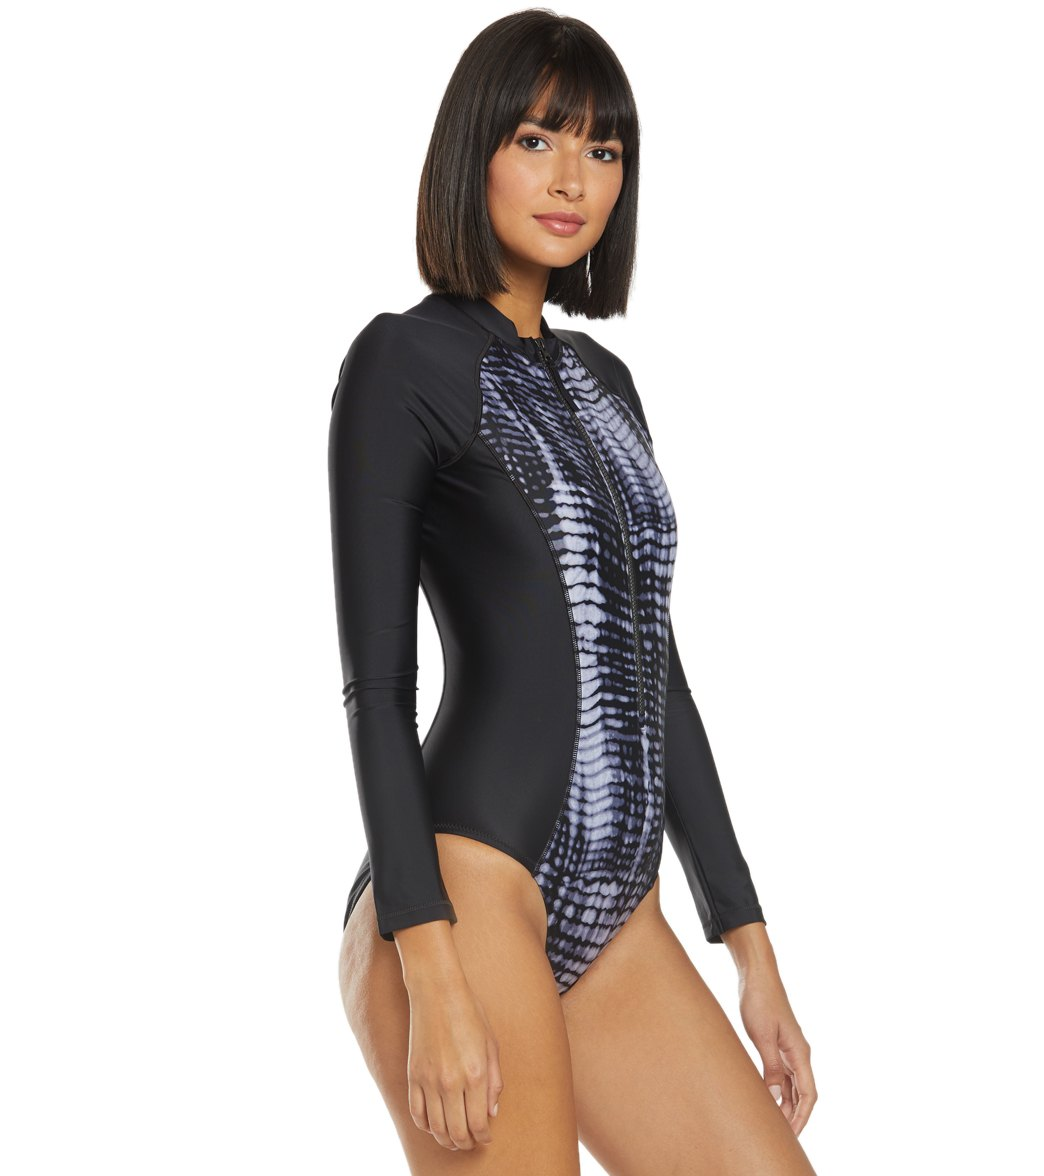 f3584077df Speedo Long Sleeve One Piece Swimsuit at SwimOutlet.com - Free Shipping